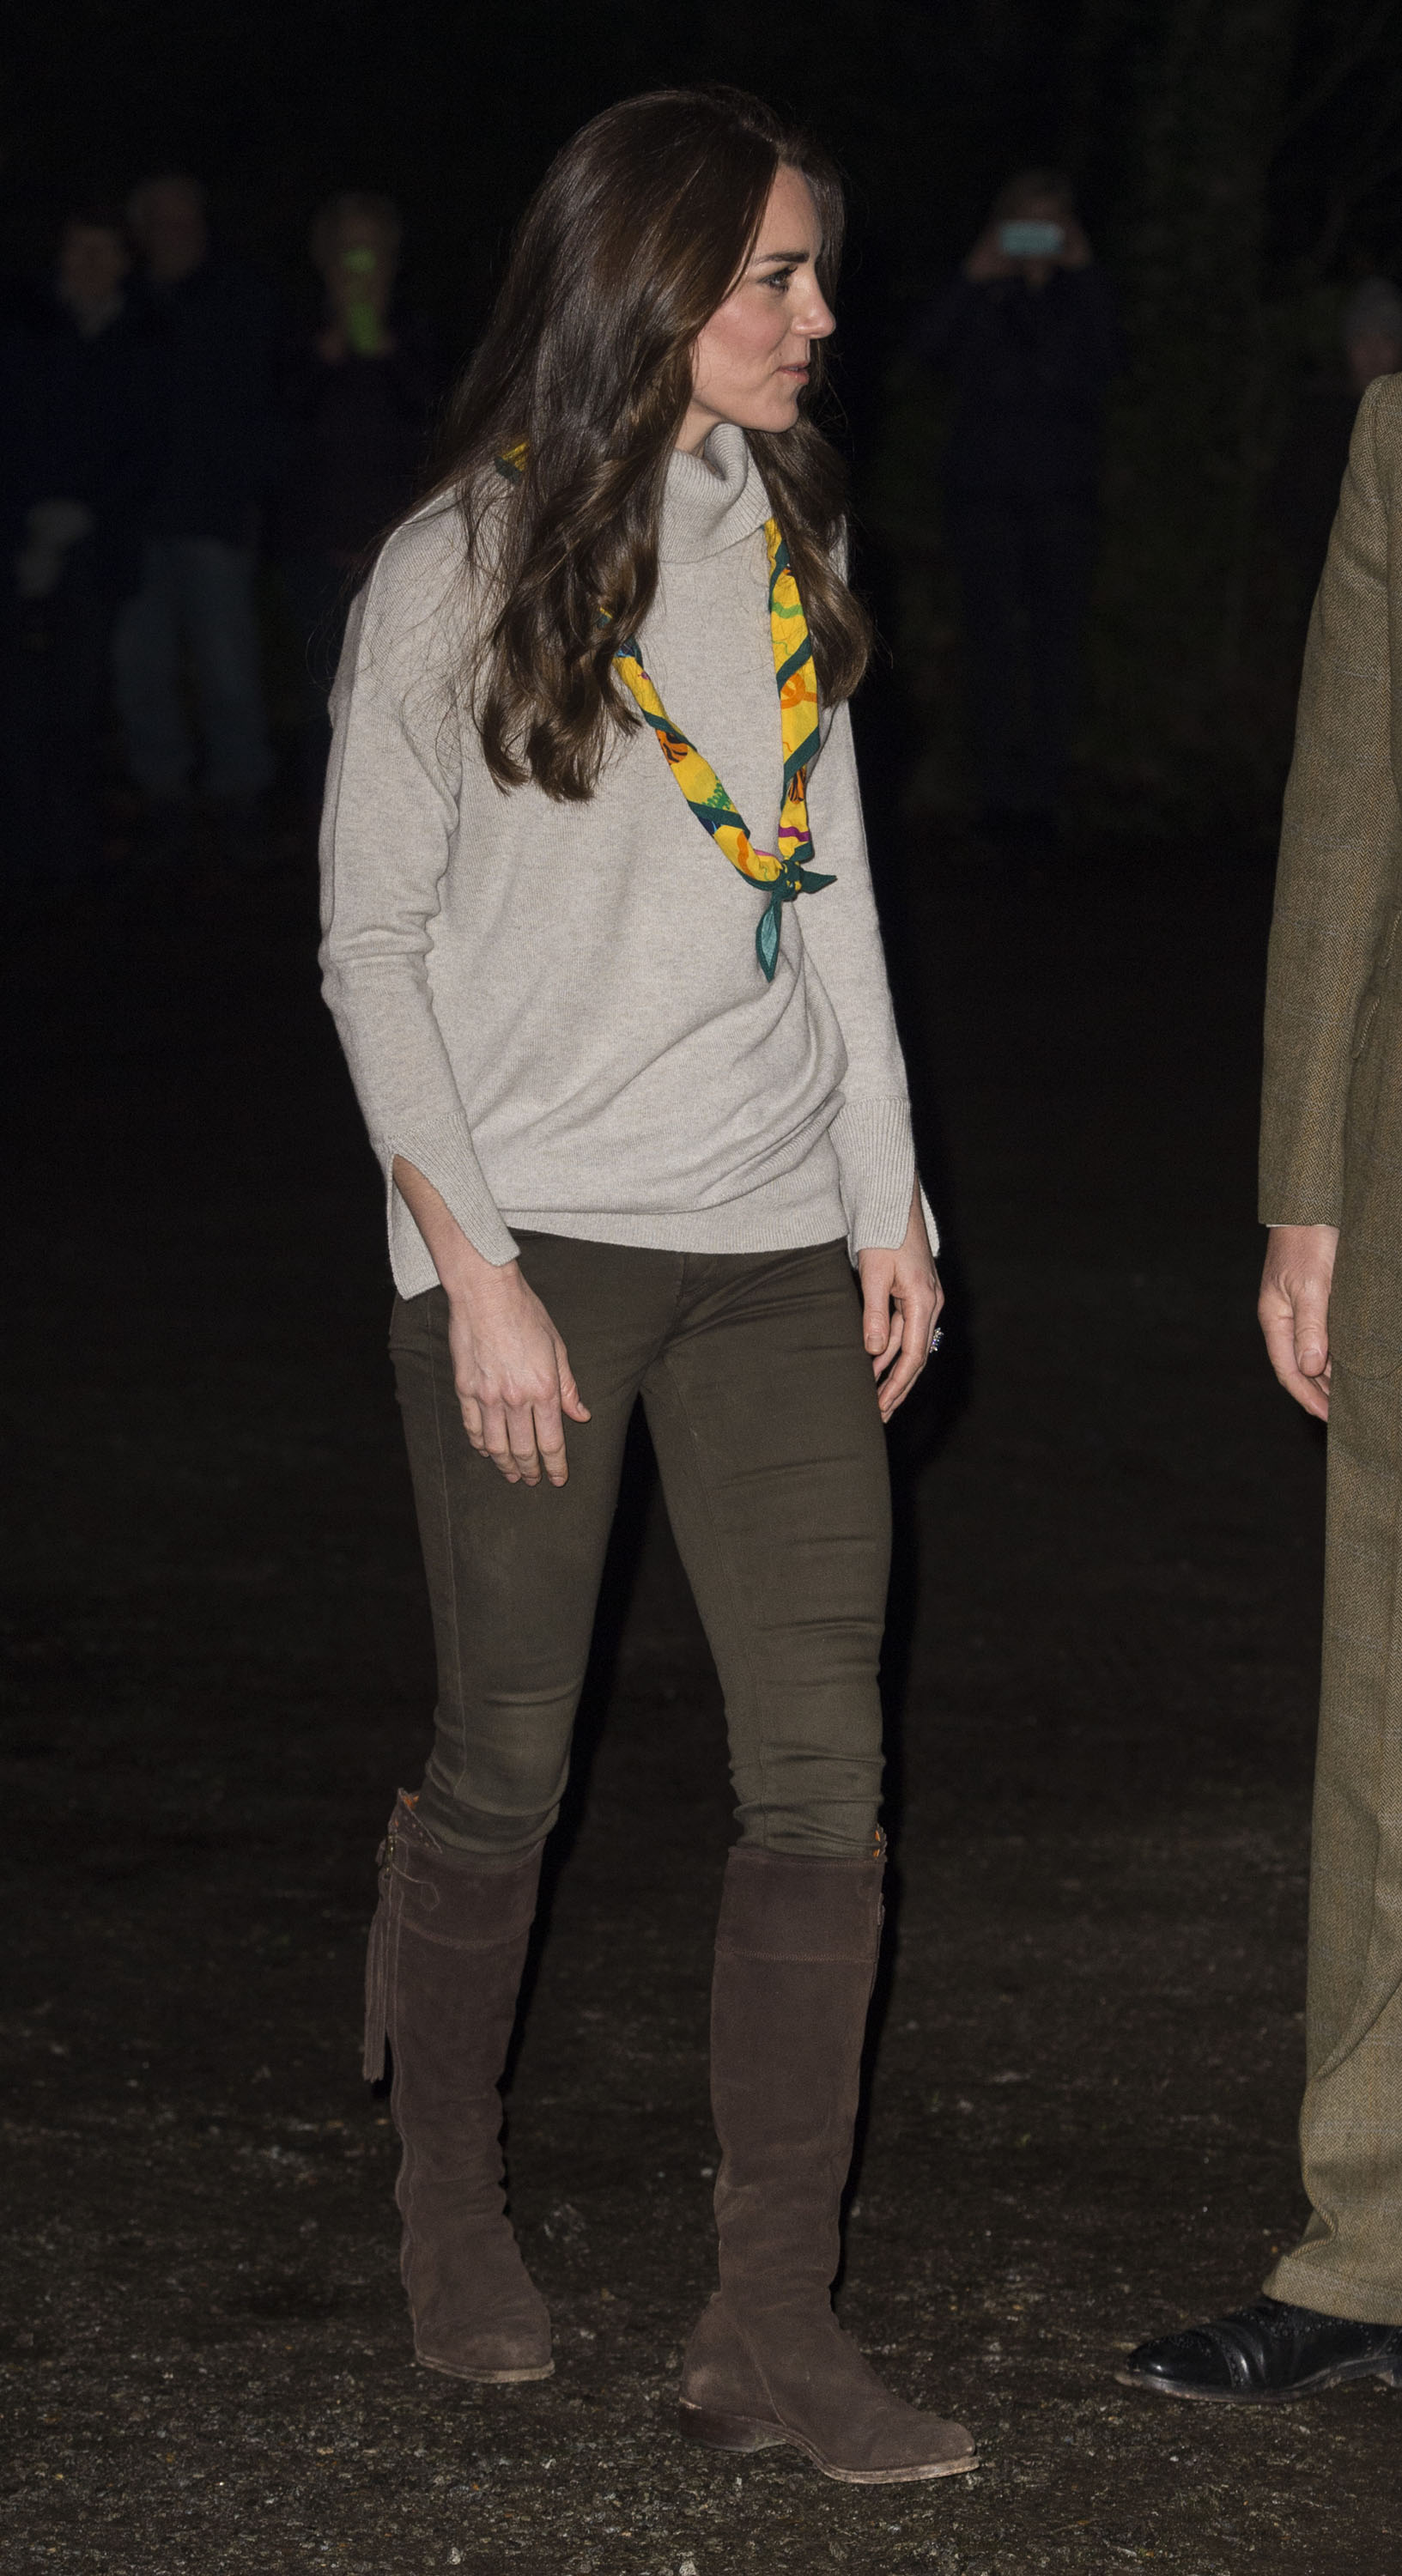 Catherine, Duchess of Cambridge during an official visit to a Cub Scout Pack Meeting to celebrate 100 years of Cubs in King's Lynn, England, on Dec. 14, 2016.